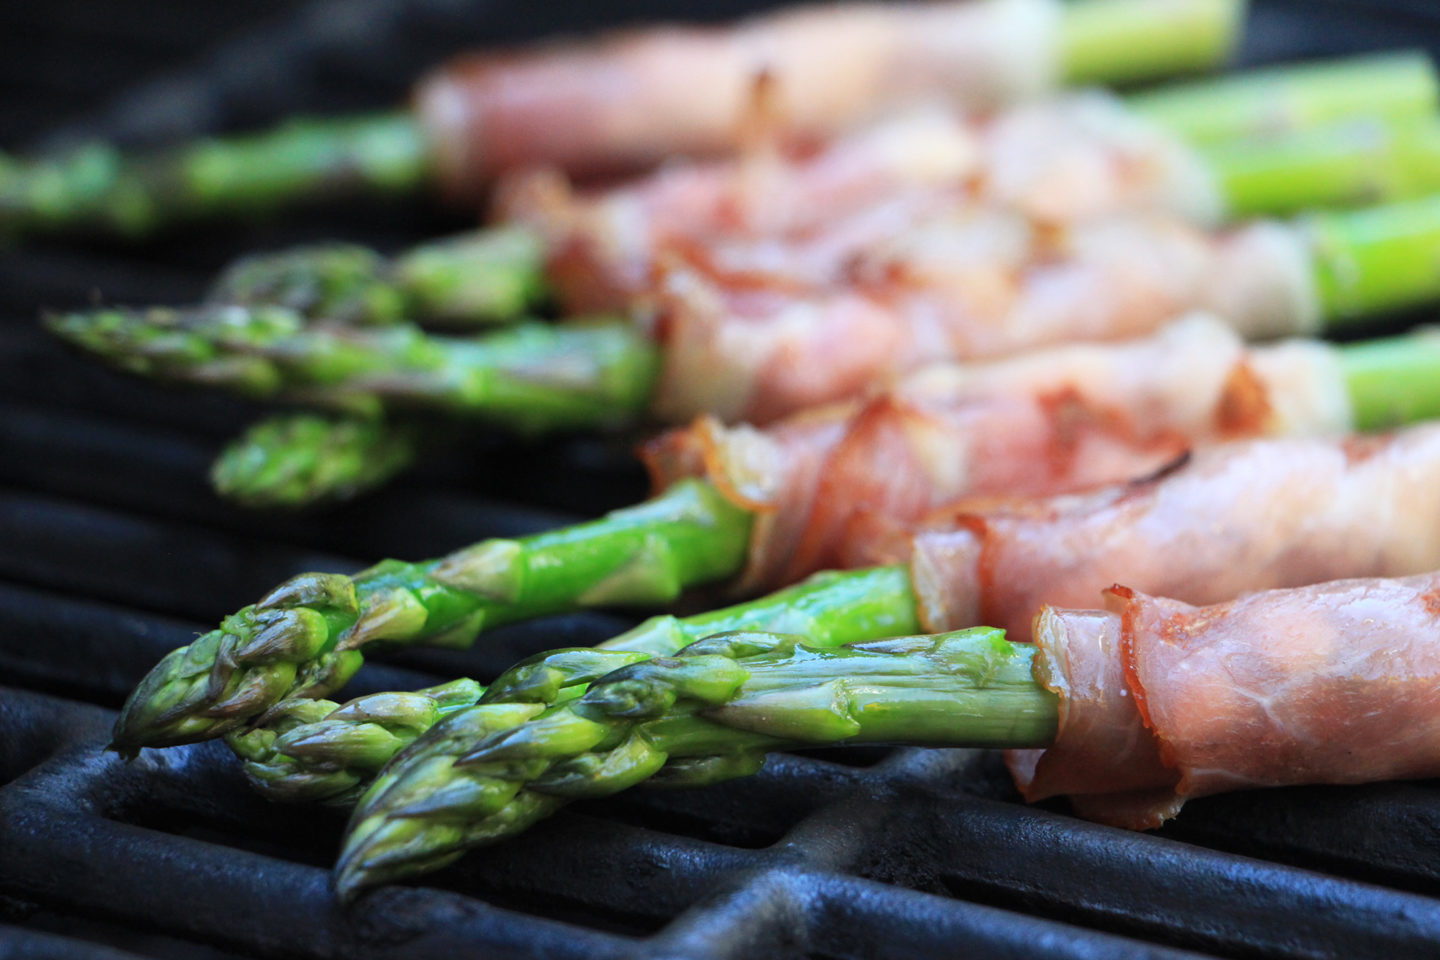 Grill on high heat for two minutes or just until the asparagus turns a bright shade of green.